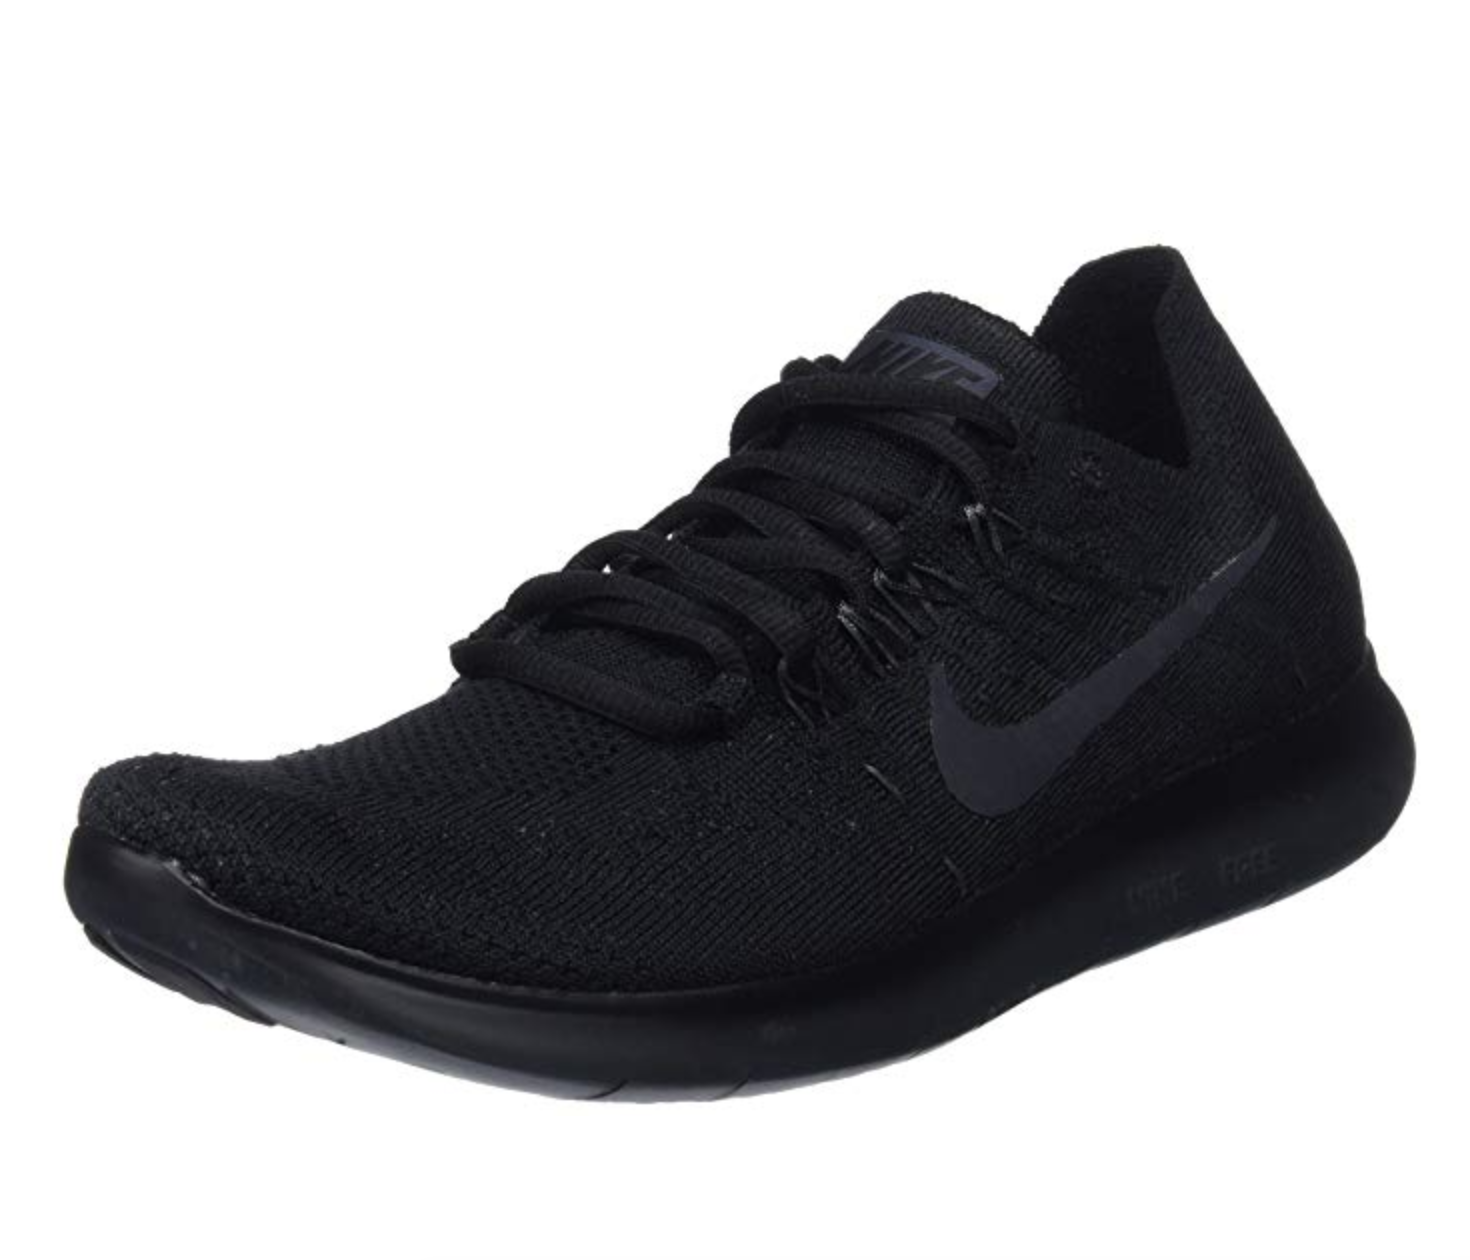 Nike Womens Free RN Flyknit 2017 Running Shoes